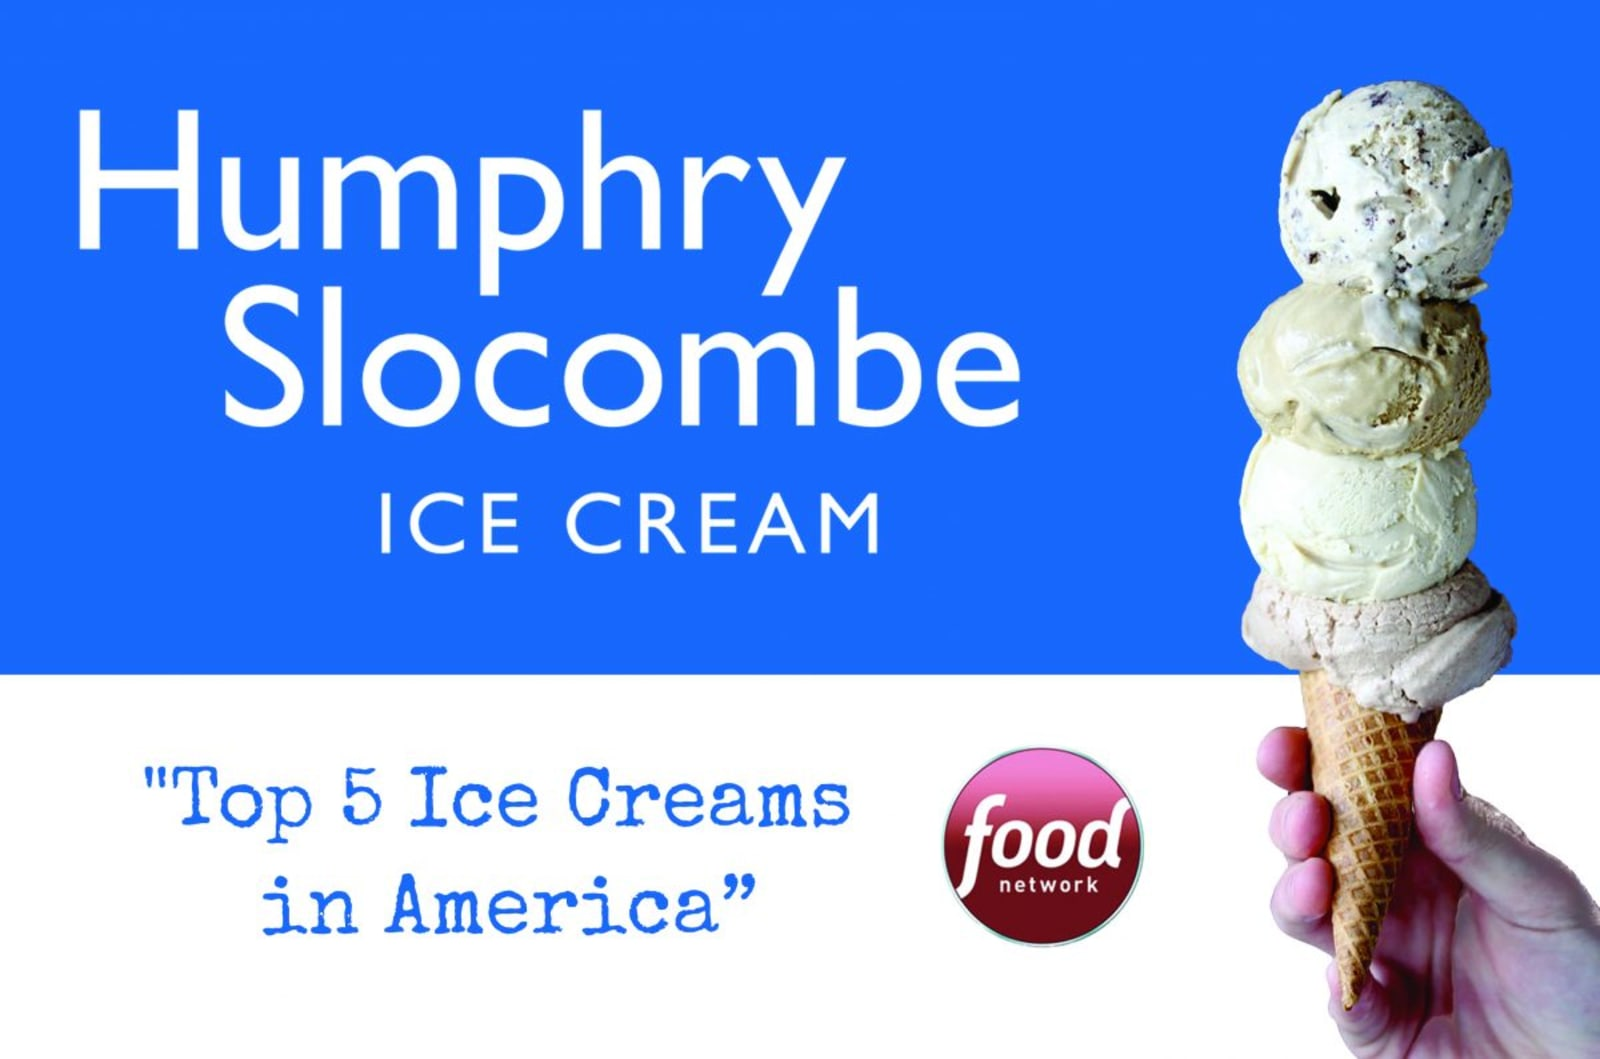 Gifts at Humphry Slocombe Ice Cream